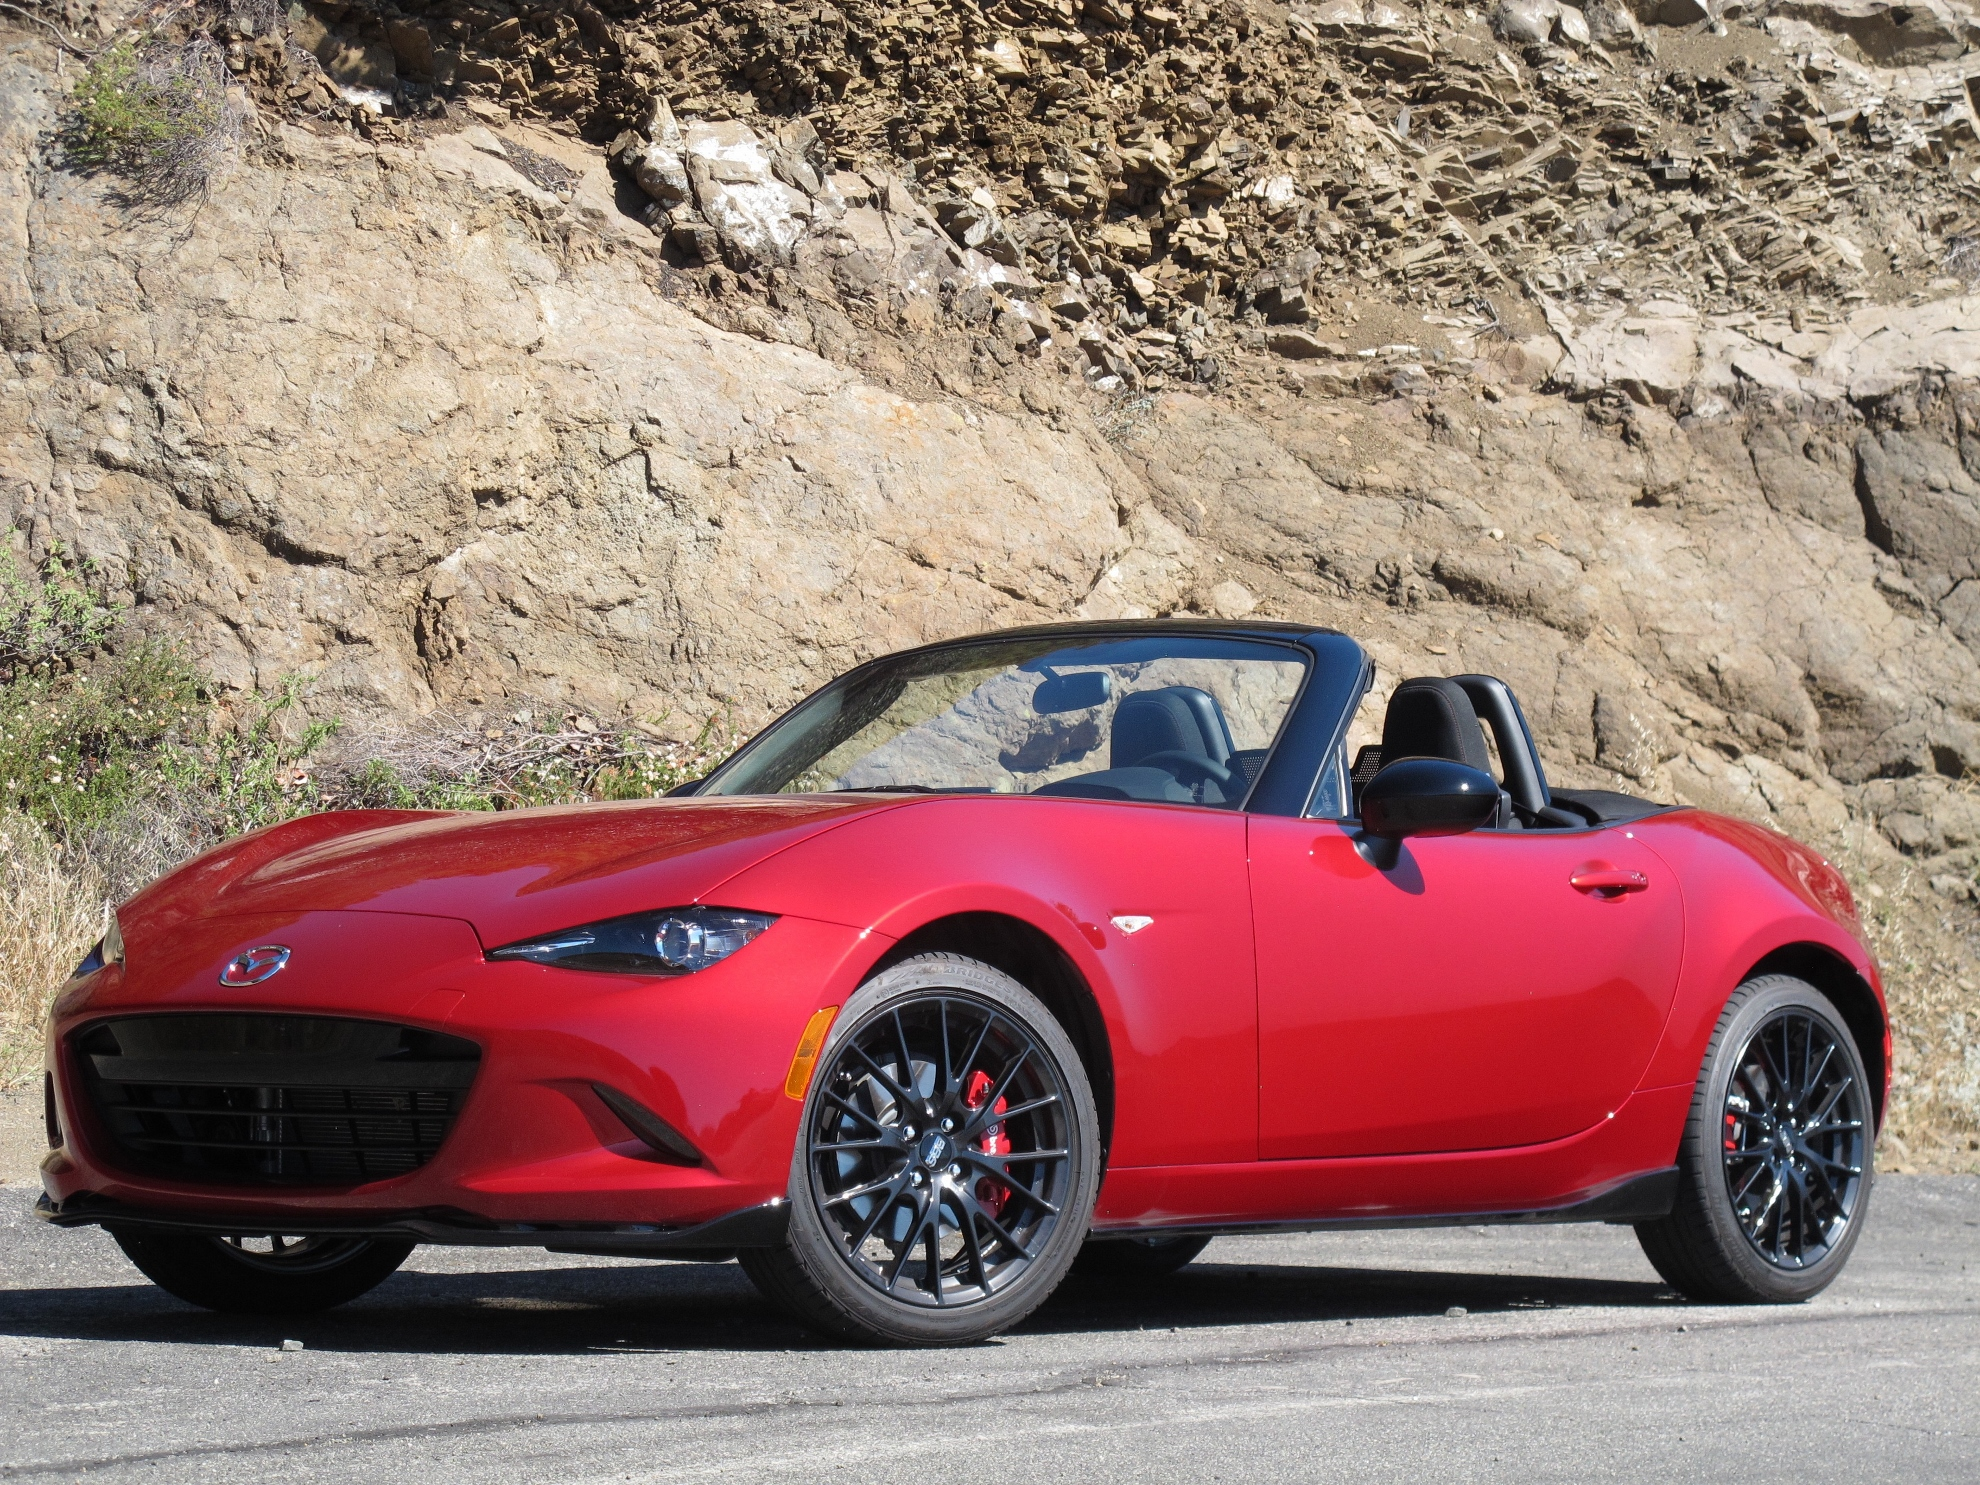 new and used mazda mx 5 miata prices photos reviews specs the car connection. Black Bedroom Furniture Sets. Home Design Ideas